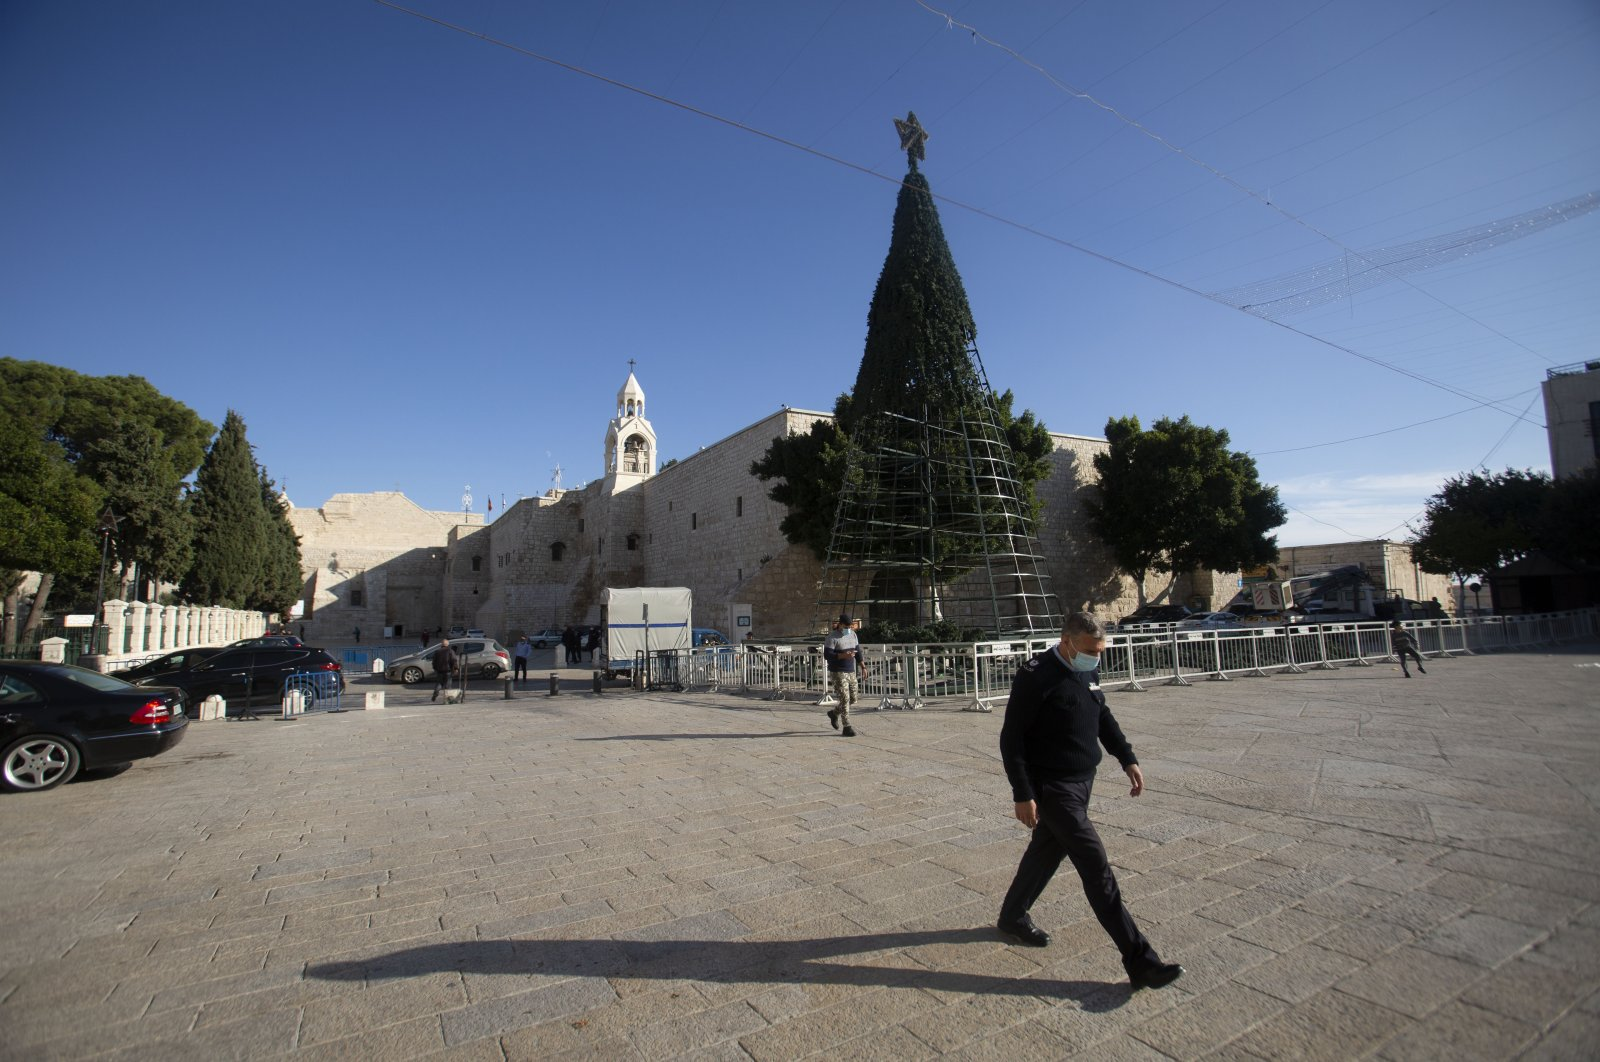 A man walks outside the Church of the Nativity, traditionally believed to be the birthplace of Jesus Christ, in the West Bank City of Bethlehem, Nov. 23, 2020. (AP Photo)